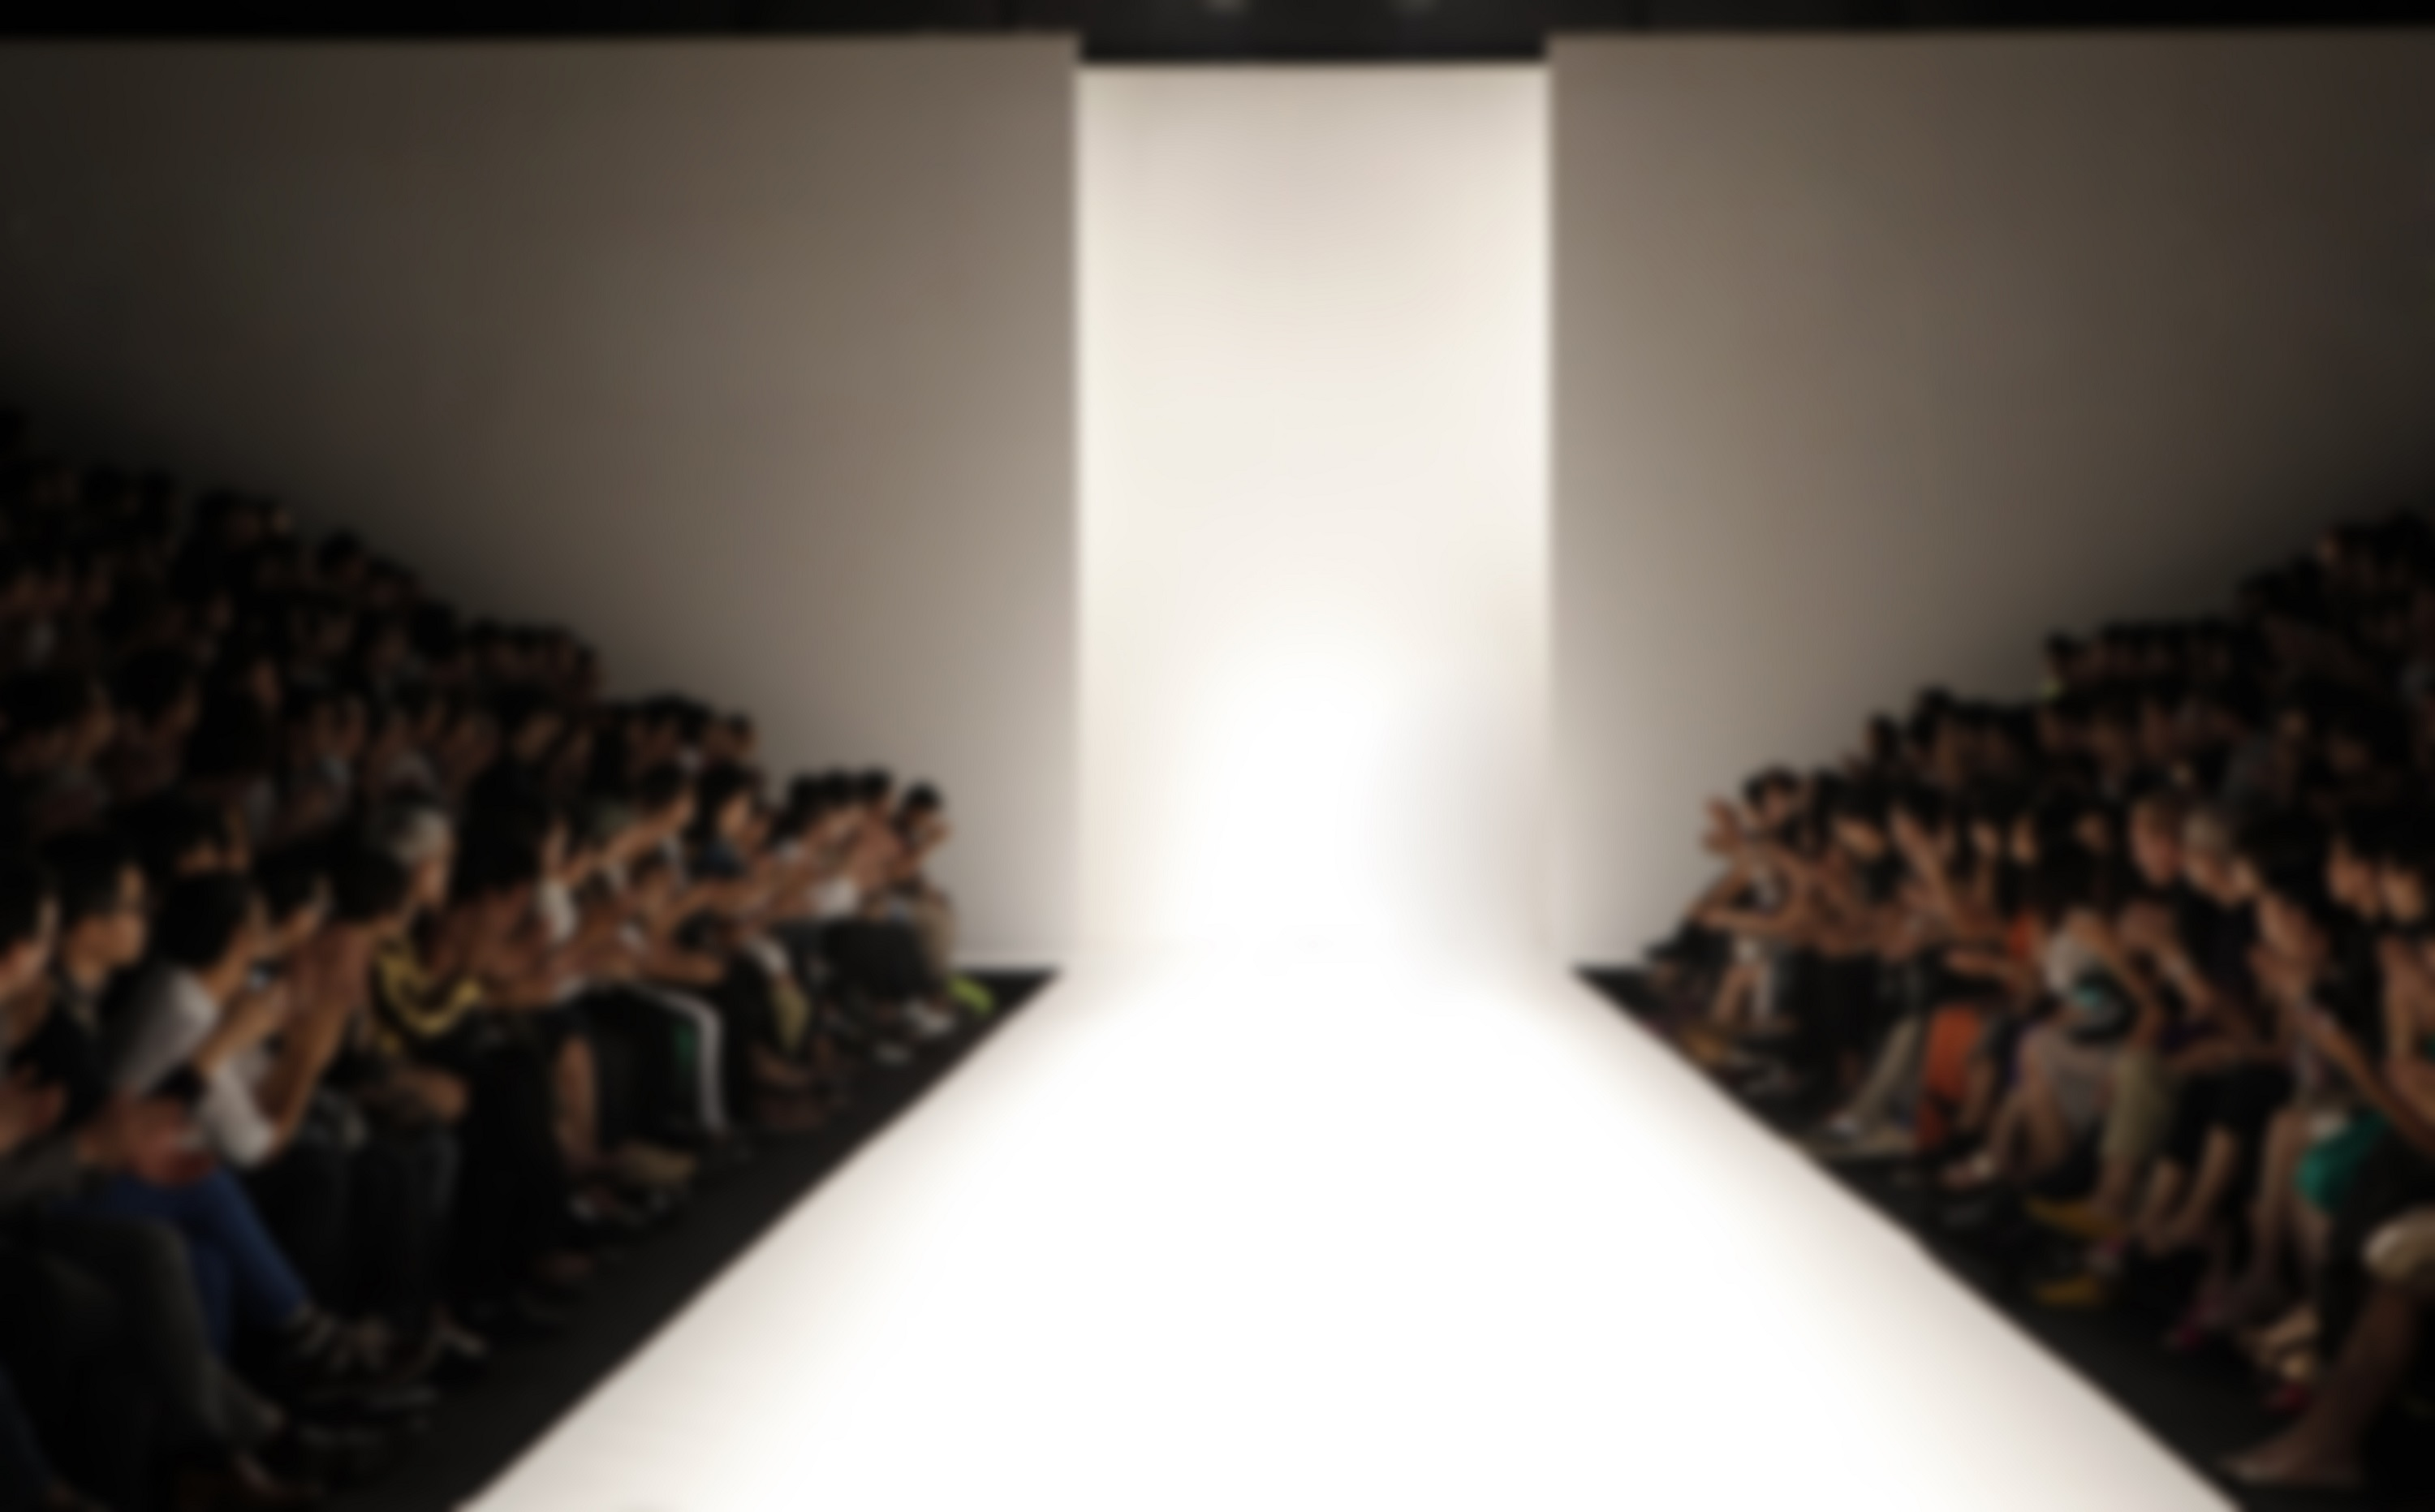 Fashion Runway Out of Focus